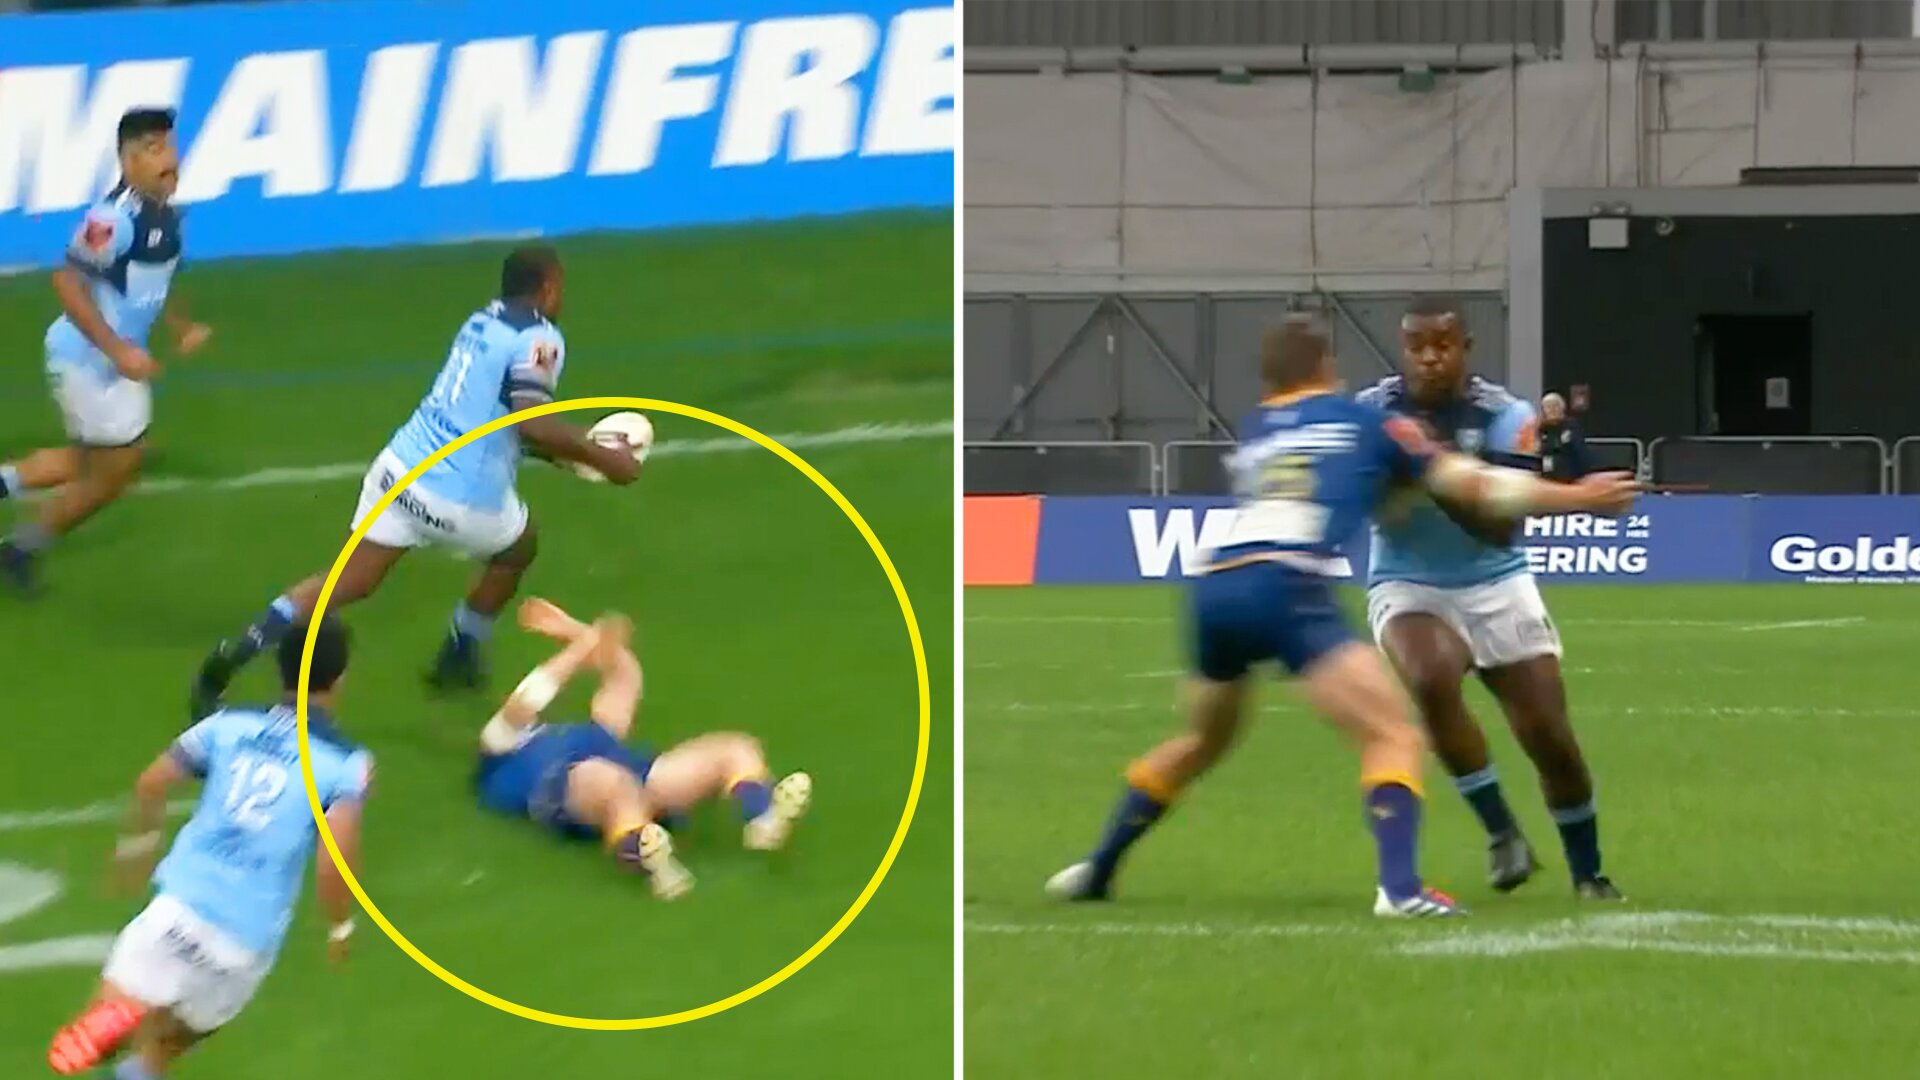 WATCH - Concerns for Kiwi fullback after sickening clash in this morning's Mitre 10 Cup clash